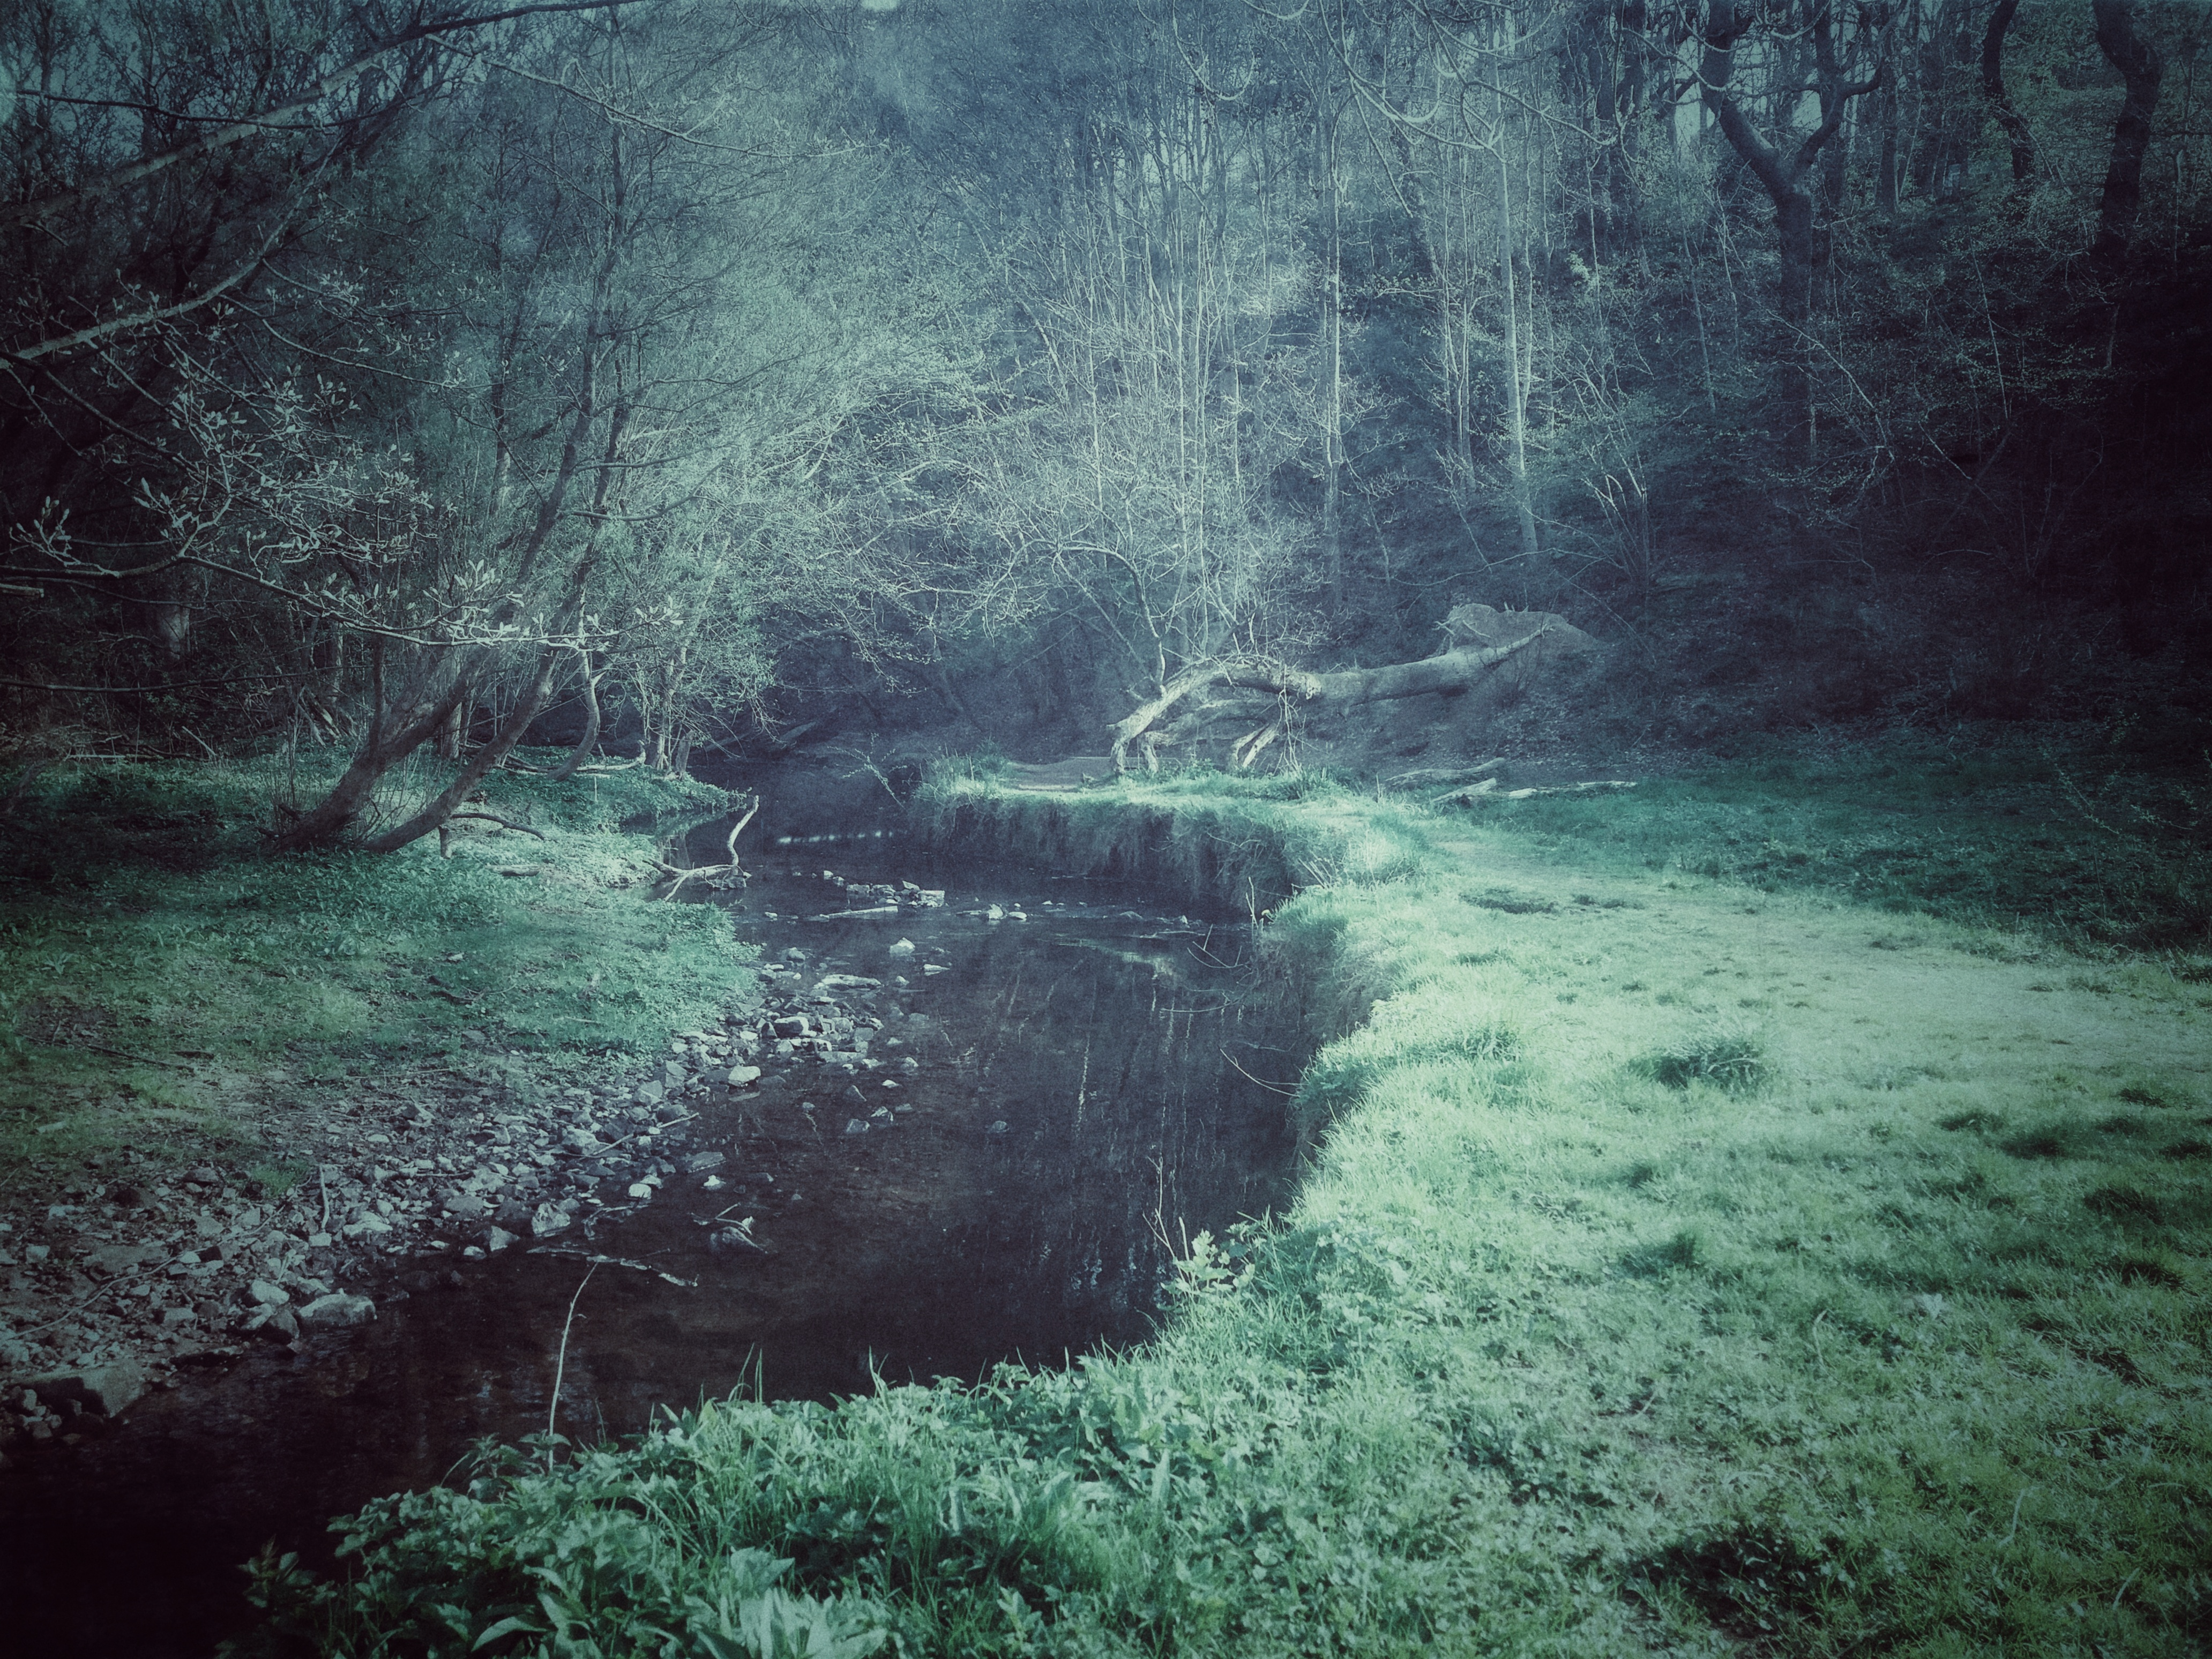 diana-marin-ethereal-eerie-photography-scenery